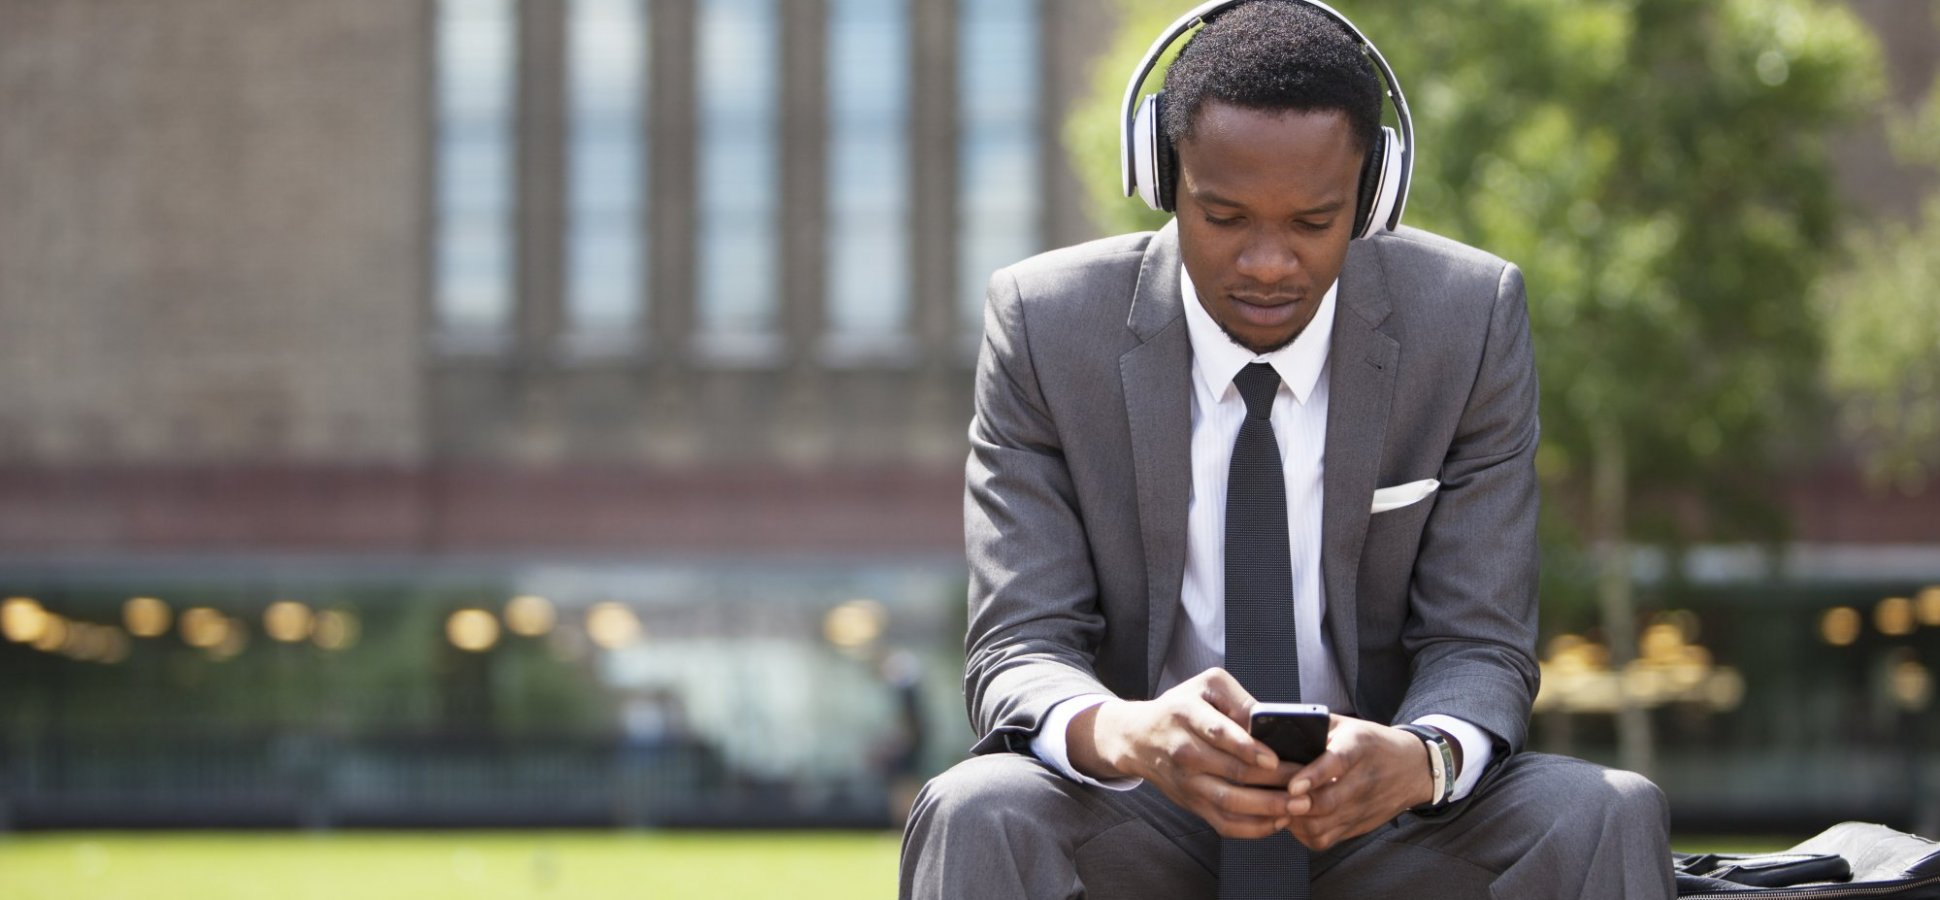 5 Podcasts That Marketers Should Pay Attention To